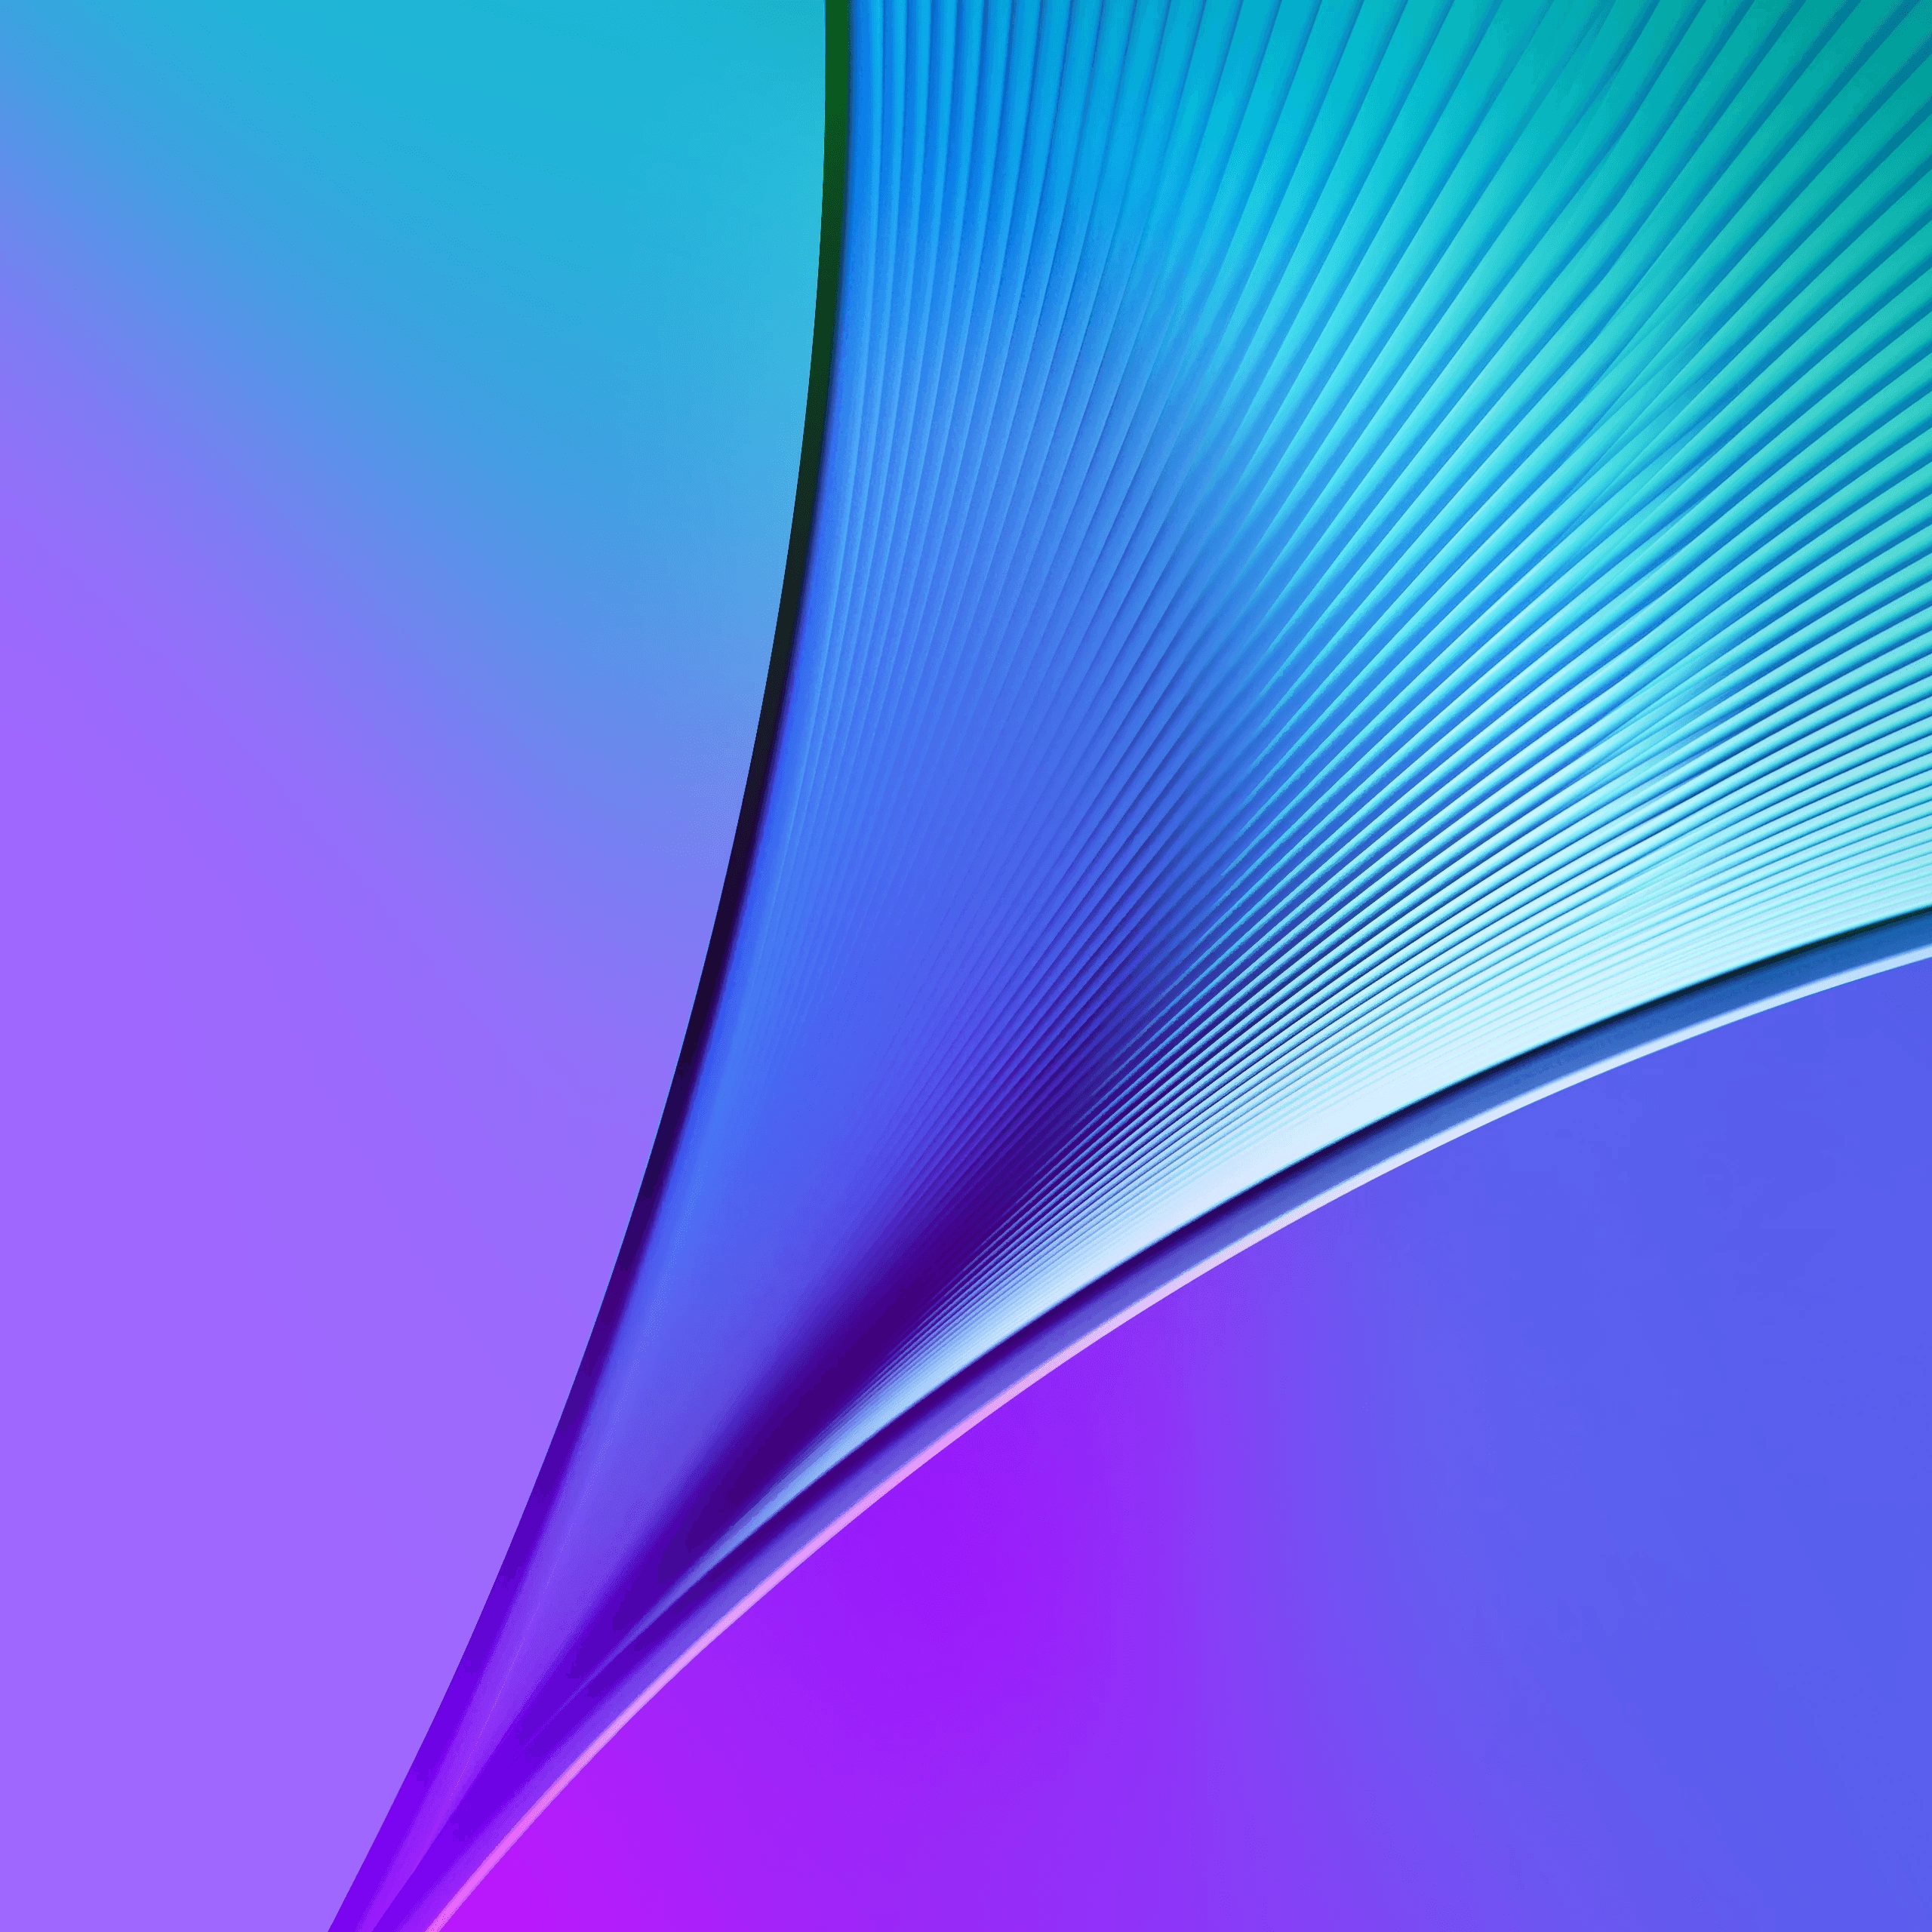 samsung galaxy note 5 wallpapers - wallpaper cave